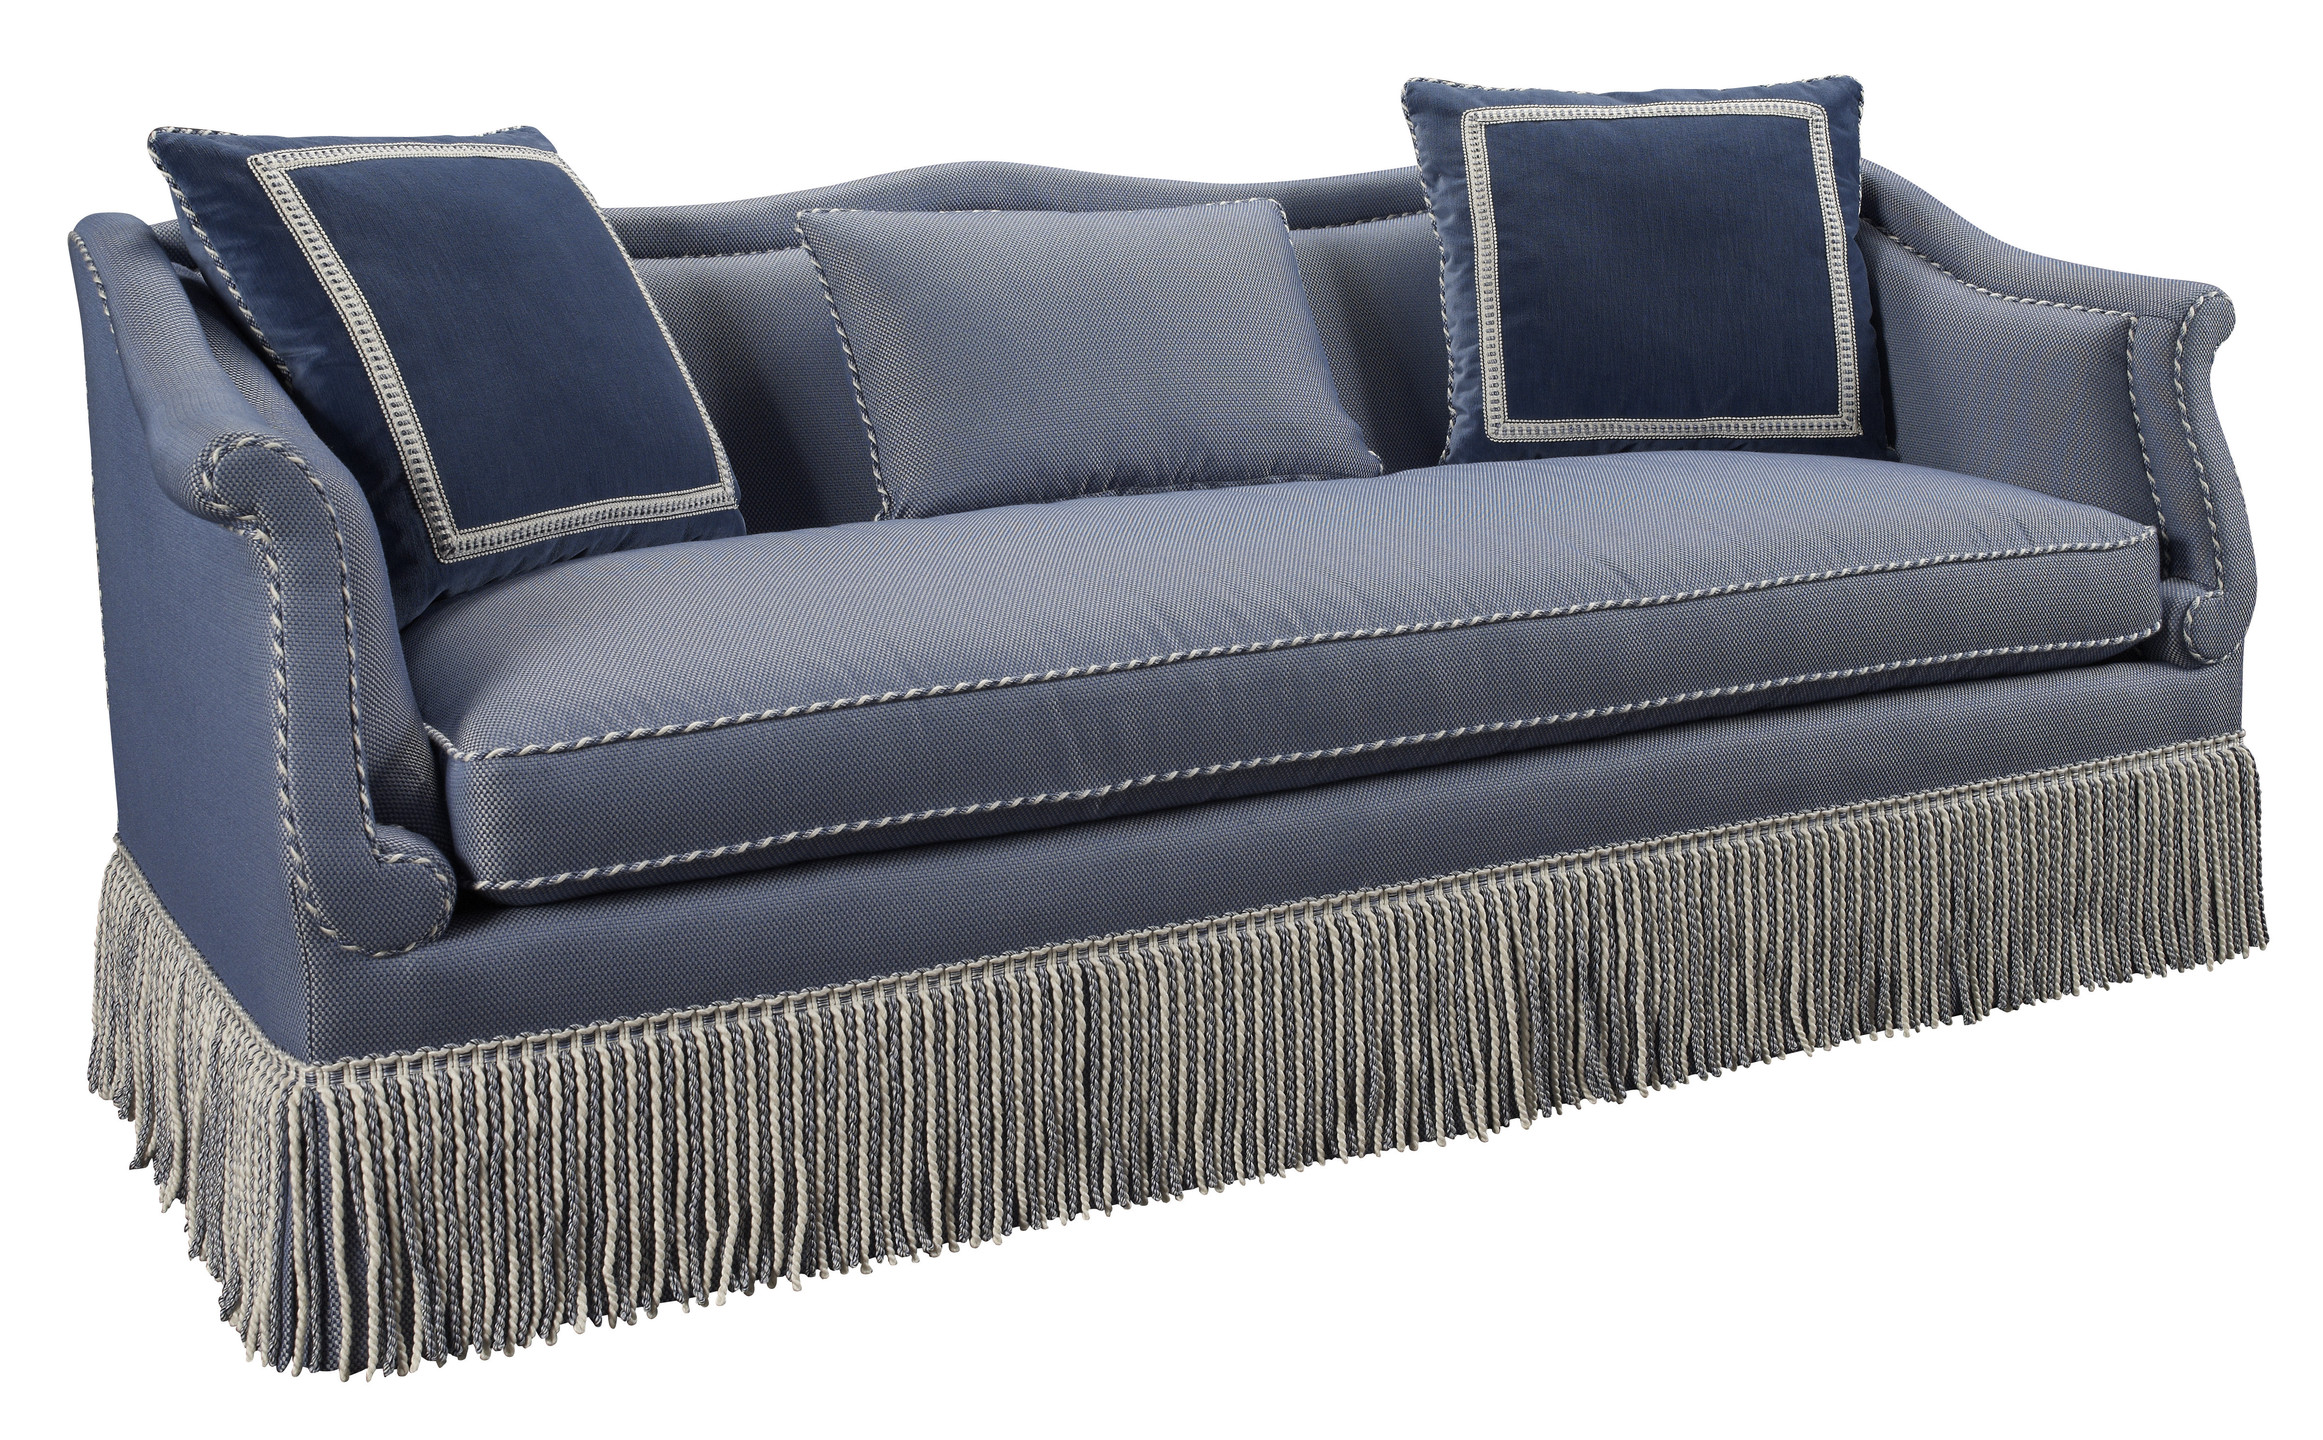 Sofa Outlets Exeter Julia Gray Belle Epoch Sofa Ej Victor